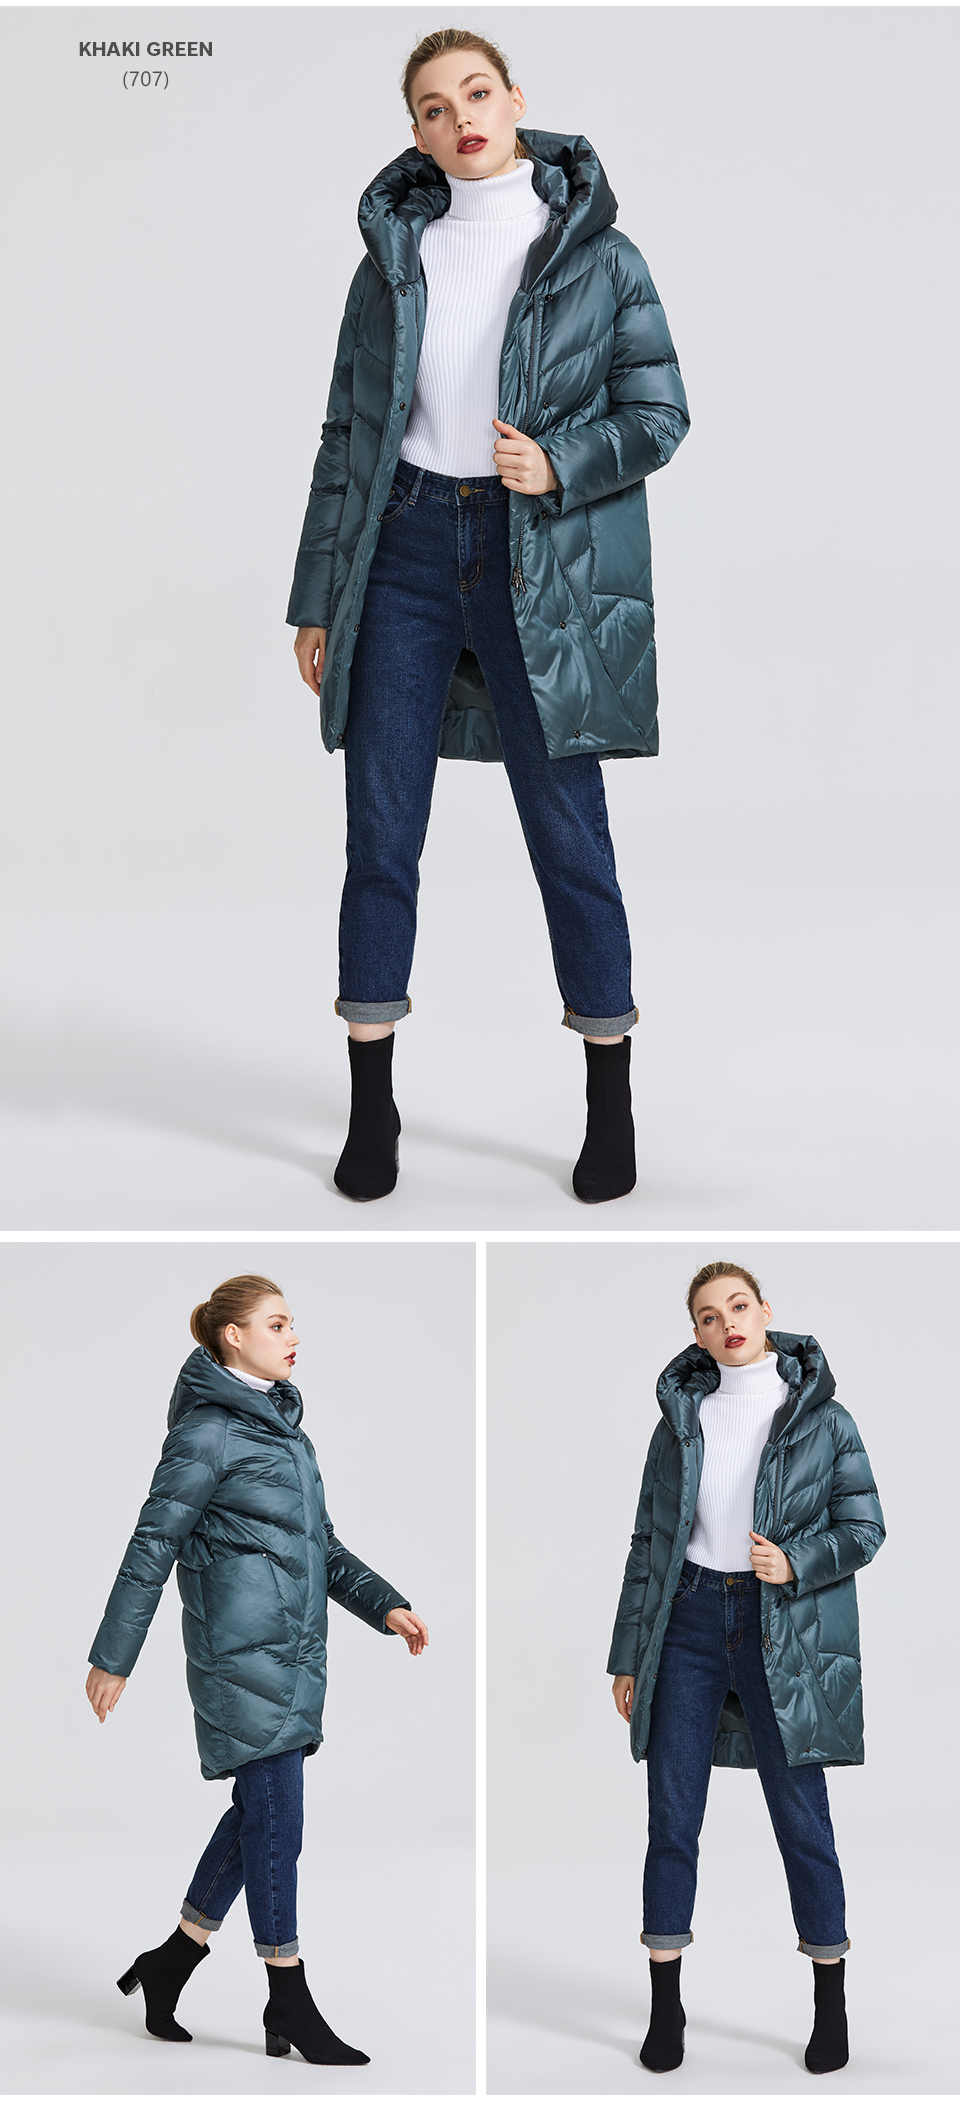 MIEGOFCE 19 Winter Jacket Women's Collection Warm Jacket With Unusual Design and Colors Winter Coats Gives Charm and Elegance 10